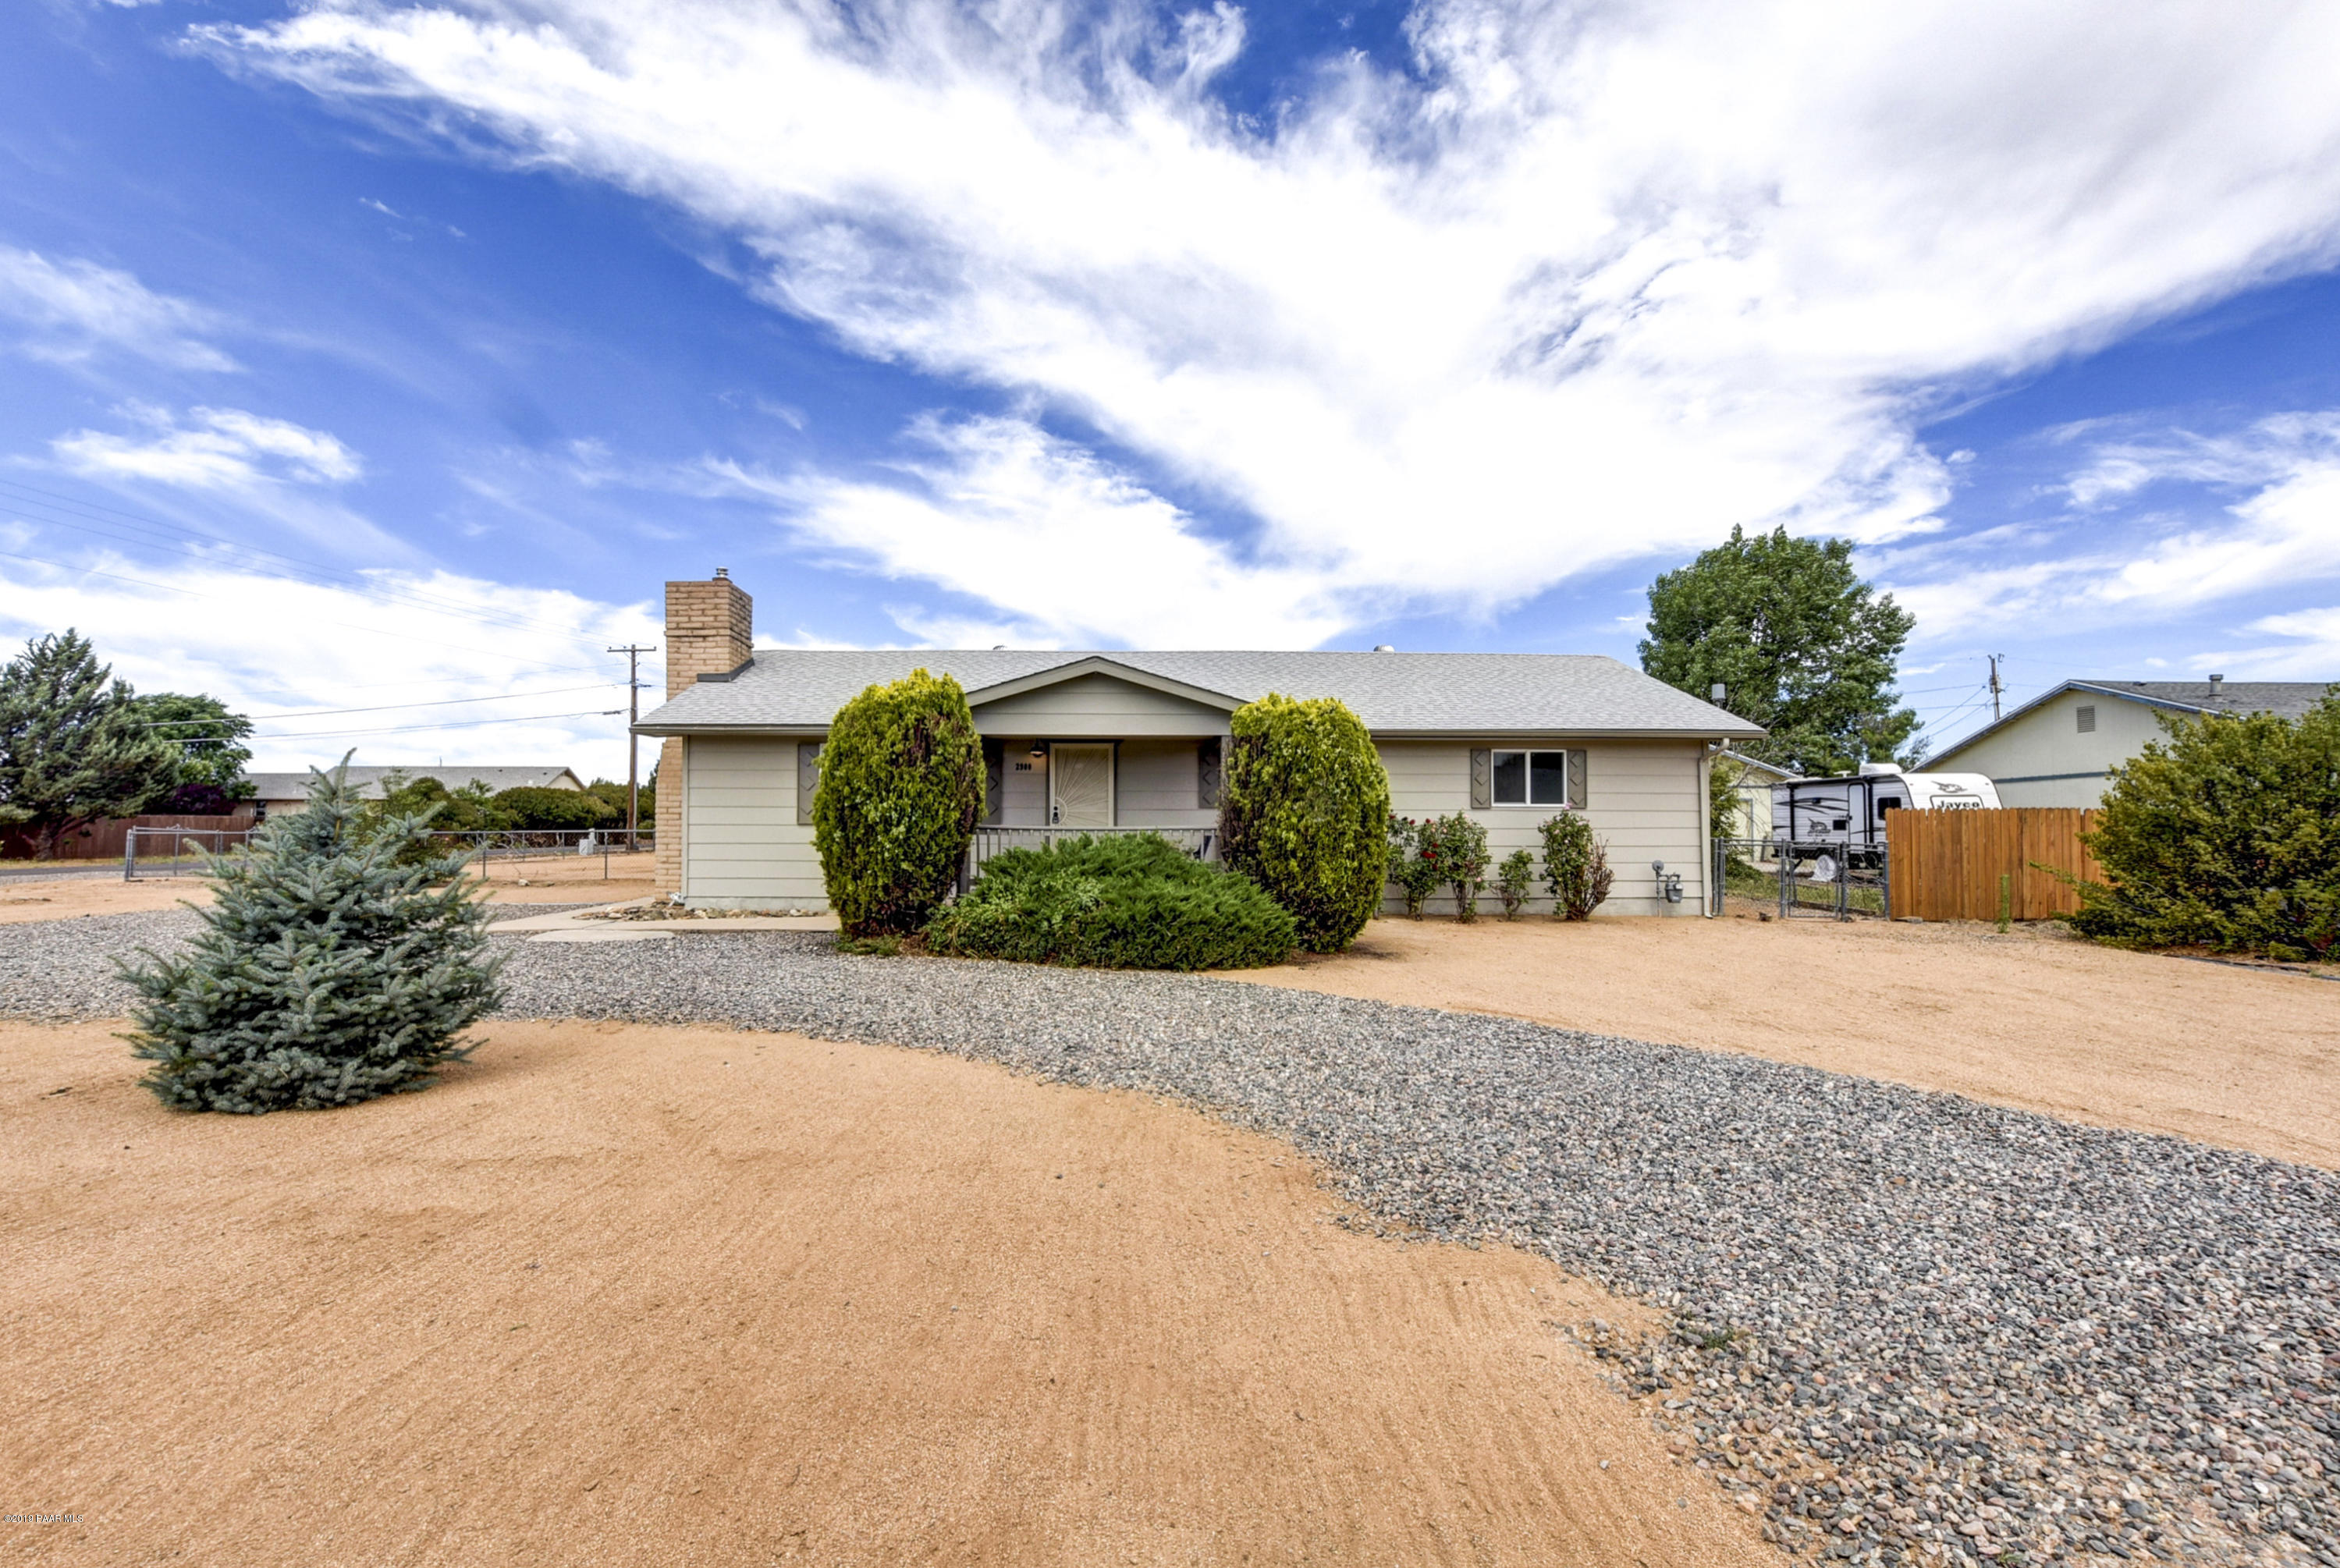 2900 N Valley View Drive, Prescott Valley in Yavapai County, AZ 86314 Home for Sale